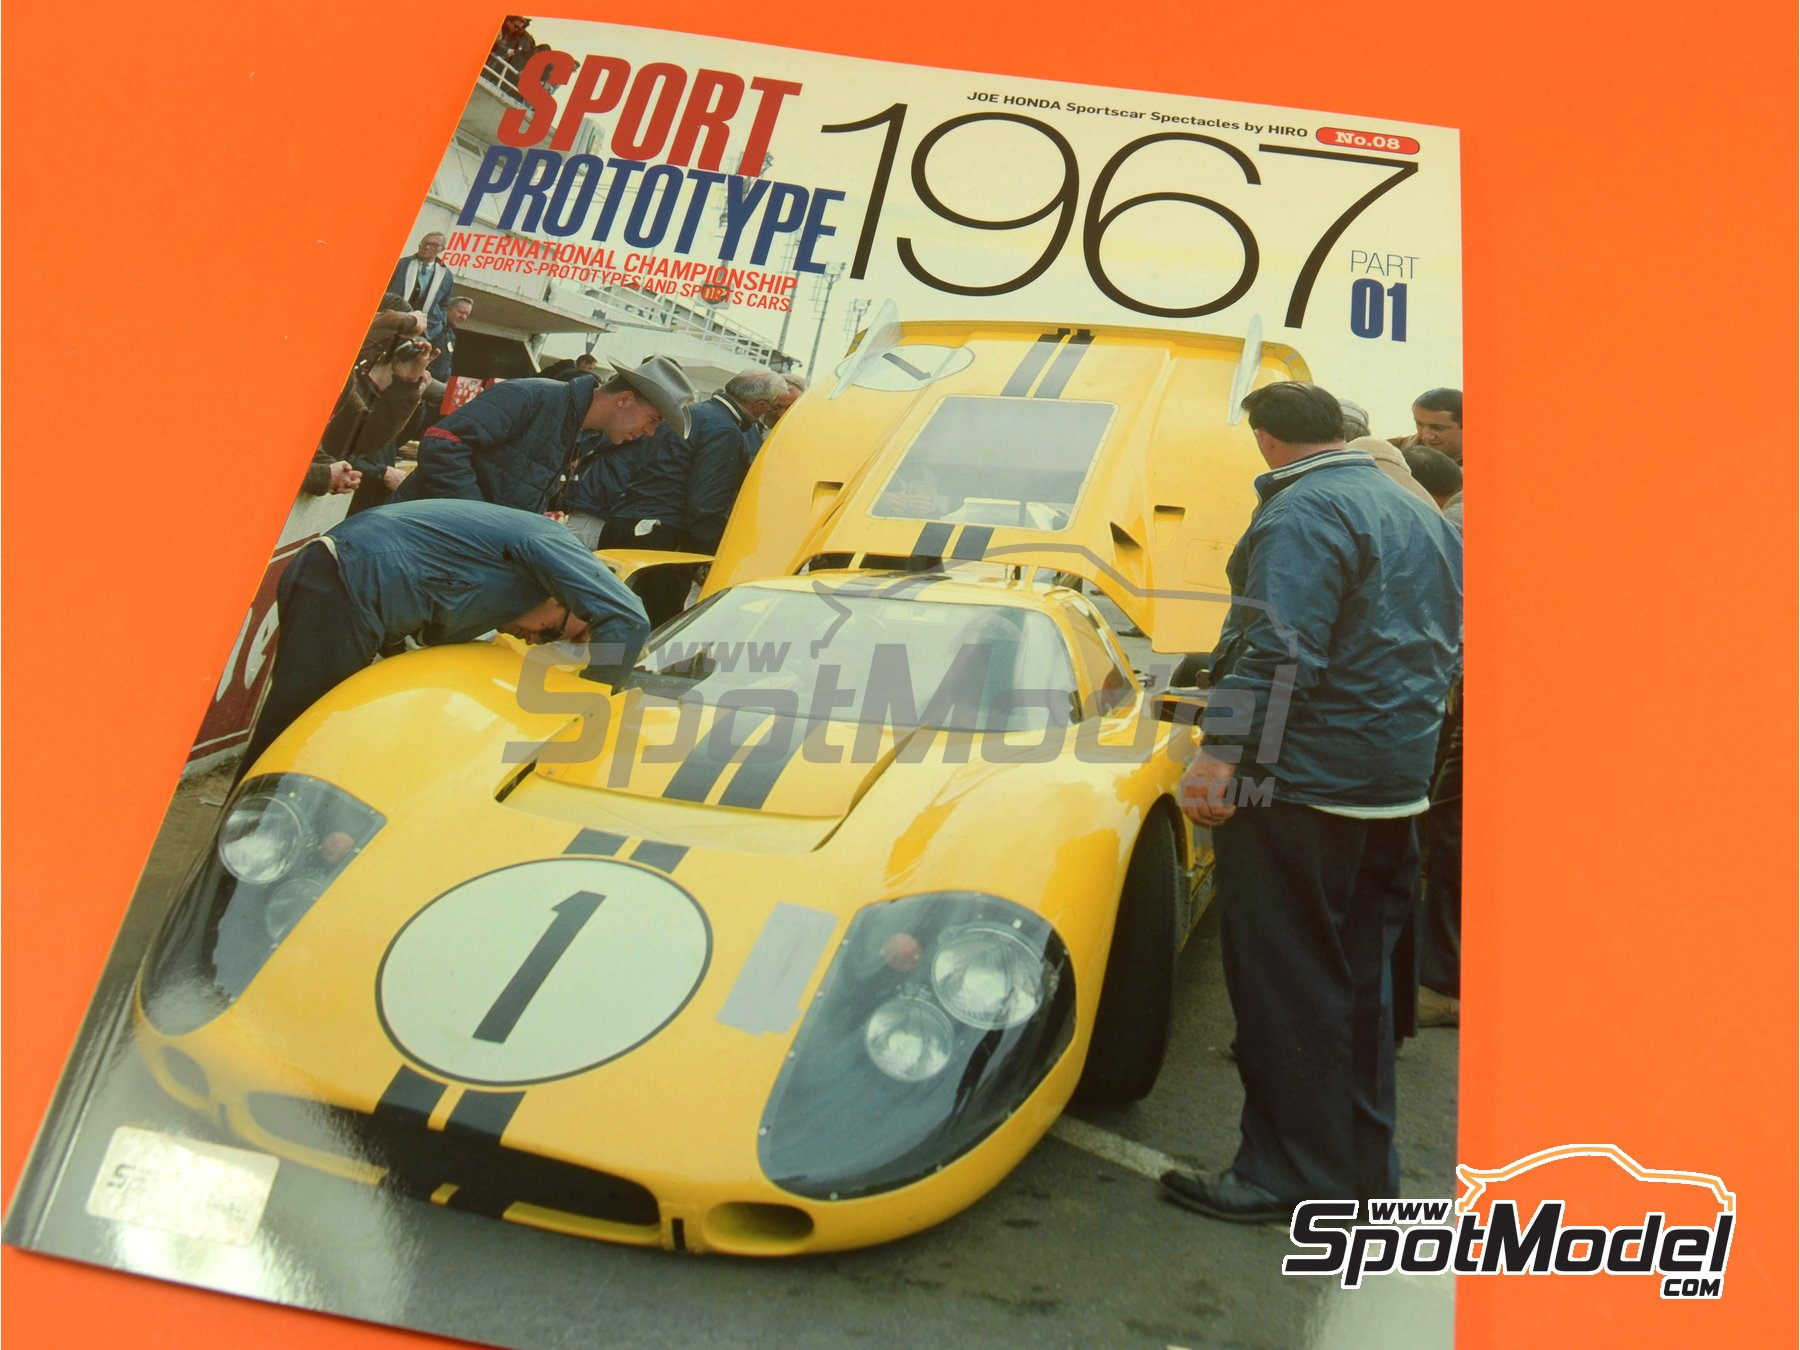 Image 1: JOE HONDA - Sportcar Spectacles - Sport Prototypes - Part 1 - 24 Hours Le Mans, Targa Florio 1967 | Reference / walkaround book manufactured by Model Factory Hiro (ref. MFH-SS008)